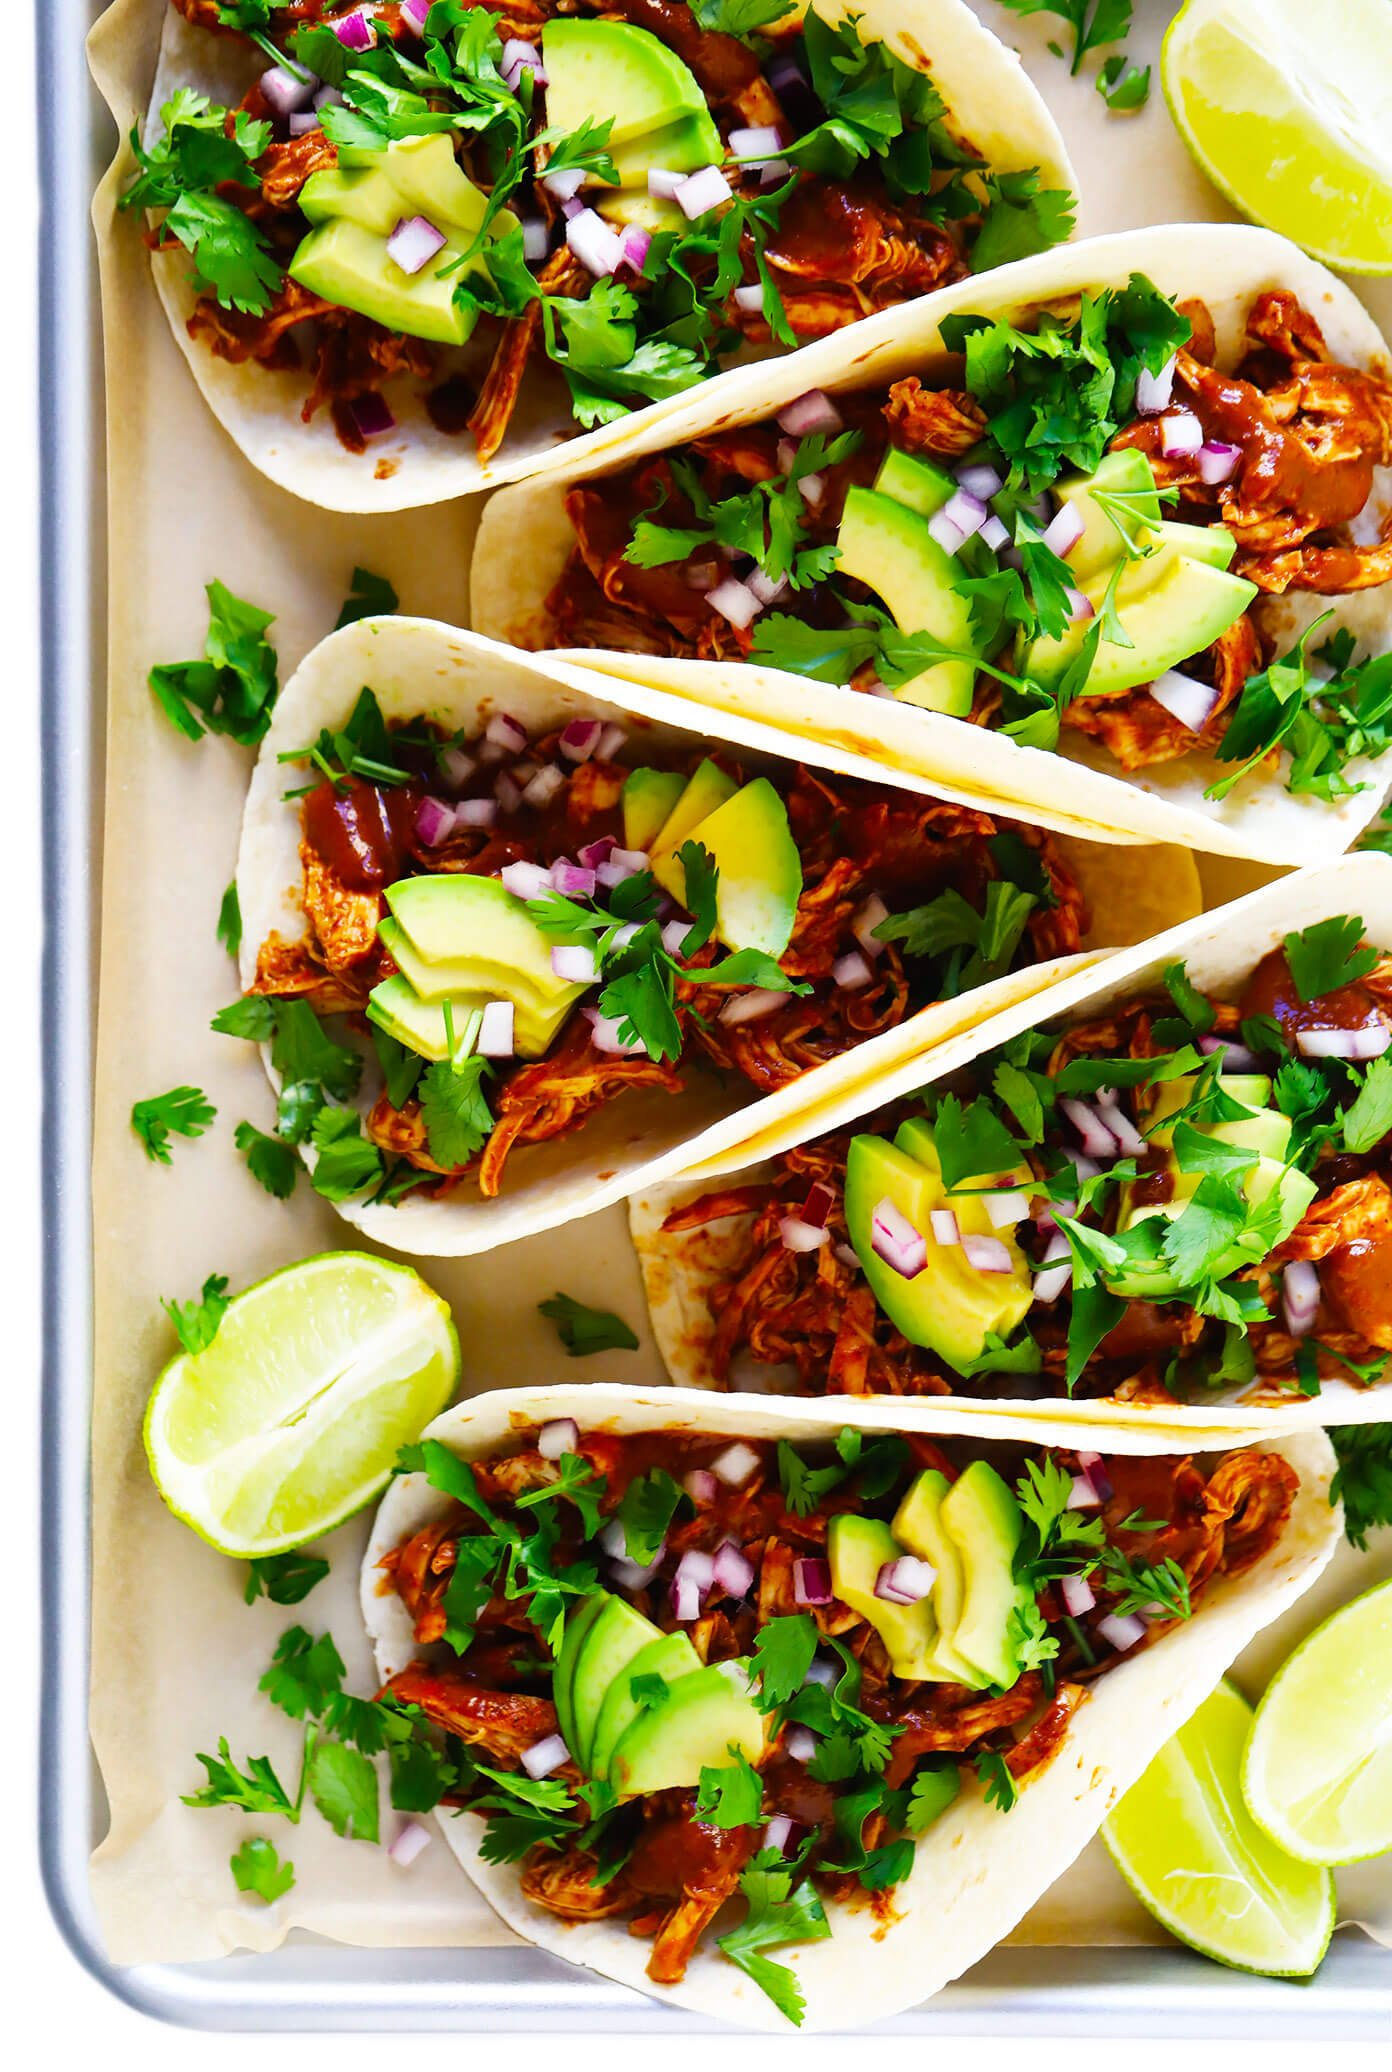 Easy Chicken Tacos with Mole Sauce